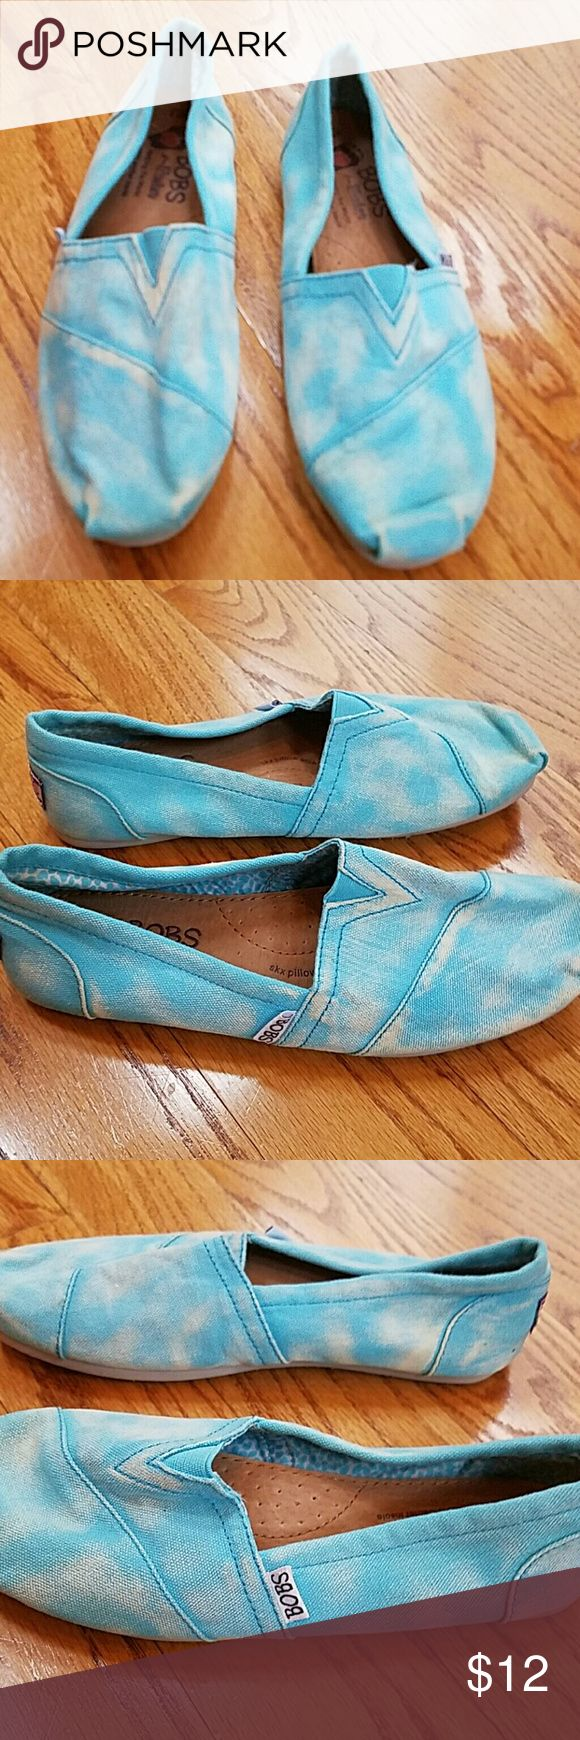 Bob's Shoes Barely worn, nice condition,  size 7.5, Bob's shoes, leather insole Bobs Shoes Espadrilles